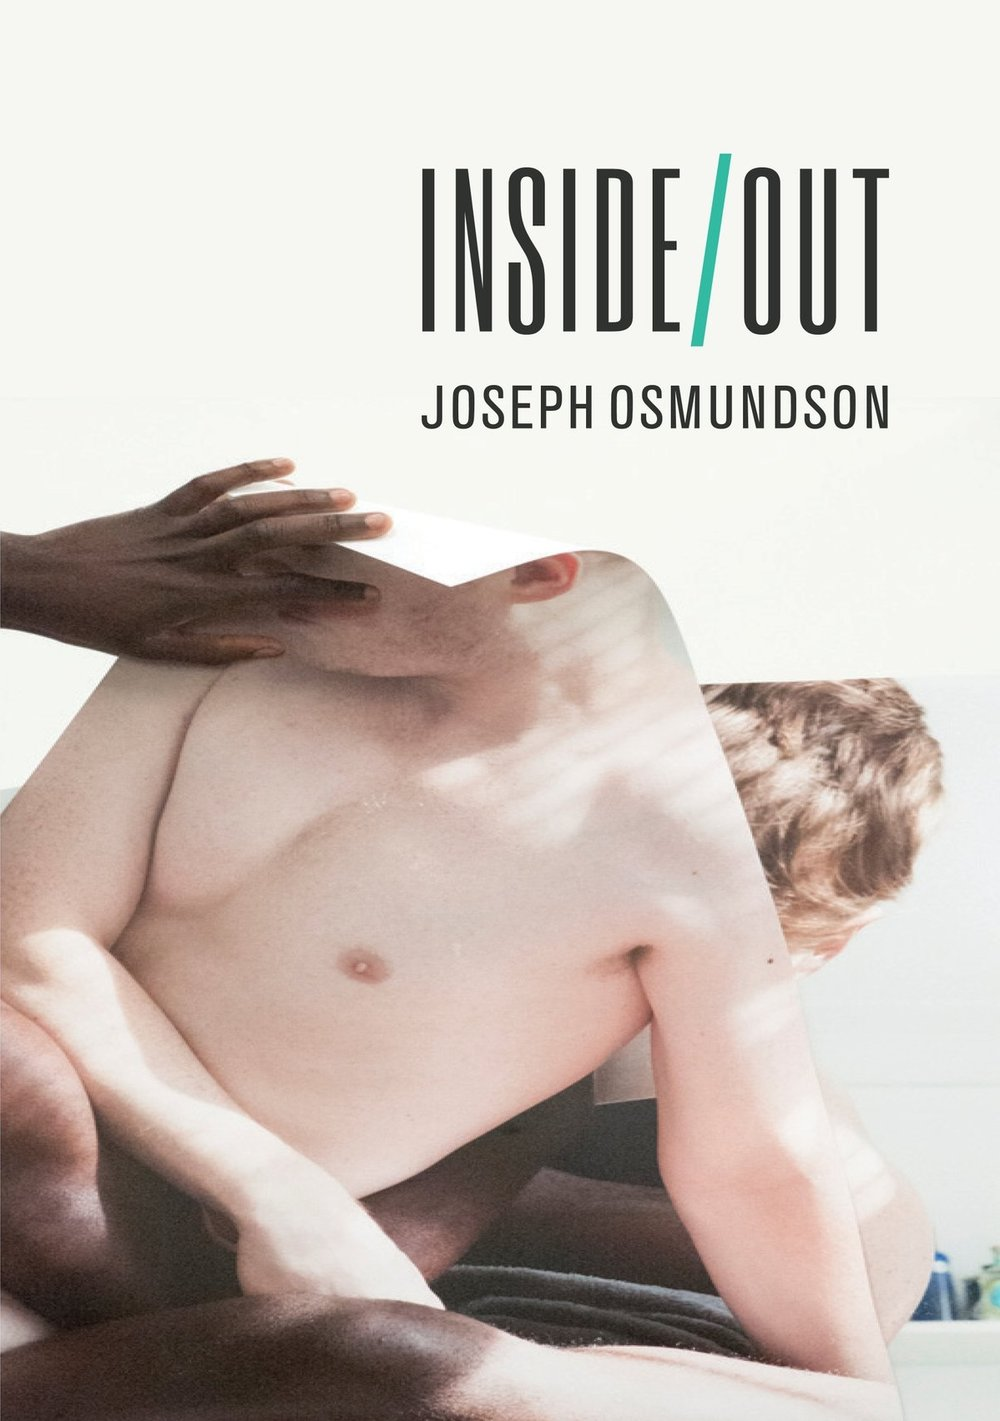 INSIDE/OUT now available for pre-sale. -